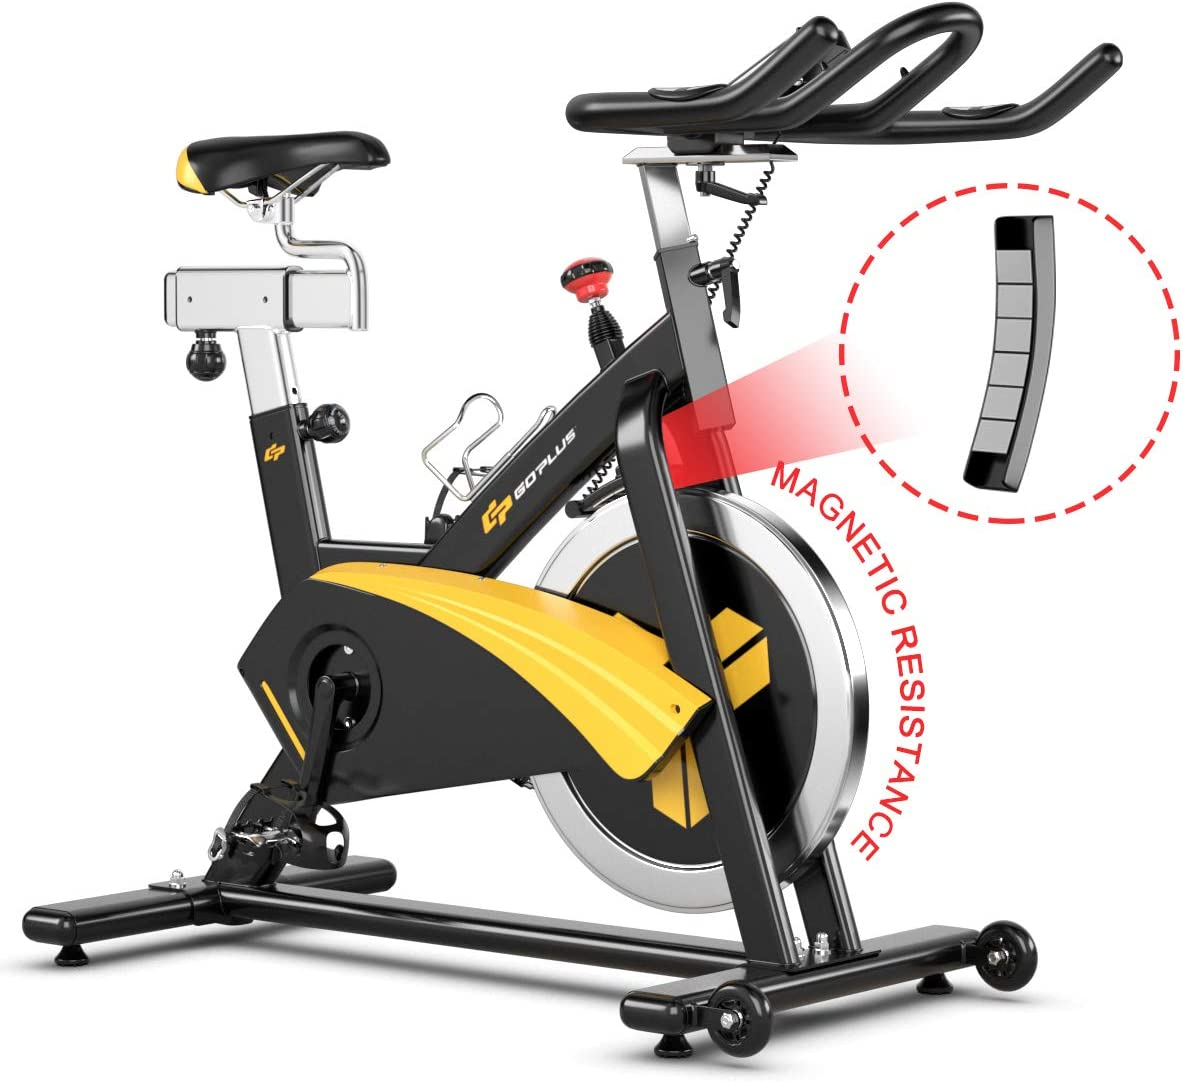 Goplus Magnetic Exercise Bike, Stationary Belt Drive Bicycle, with LCD Monitor, Indoor Cycling Bike for Home Gym Cardio Workout 30 lbs Flywheel